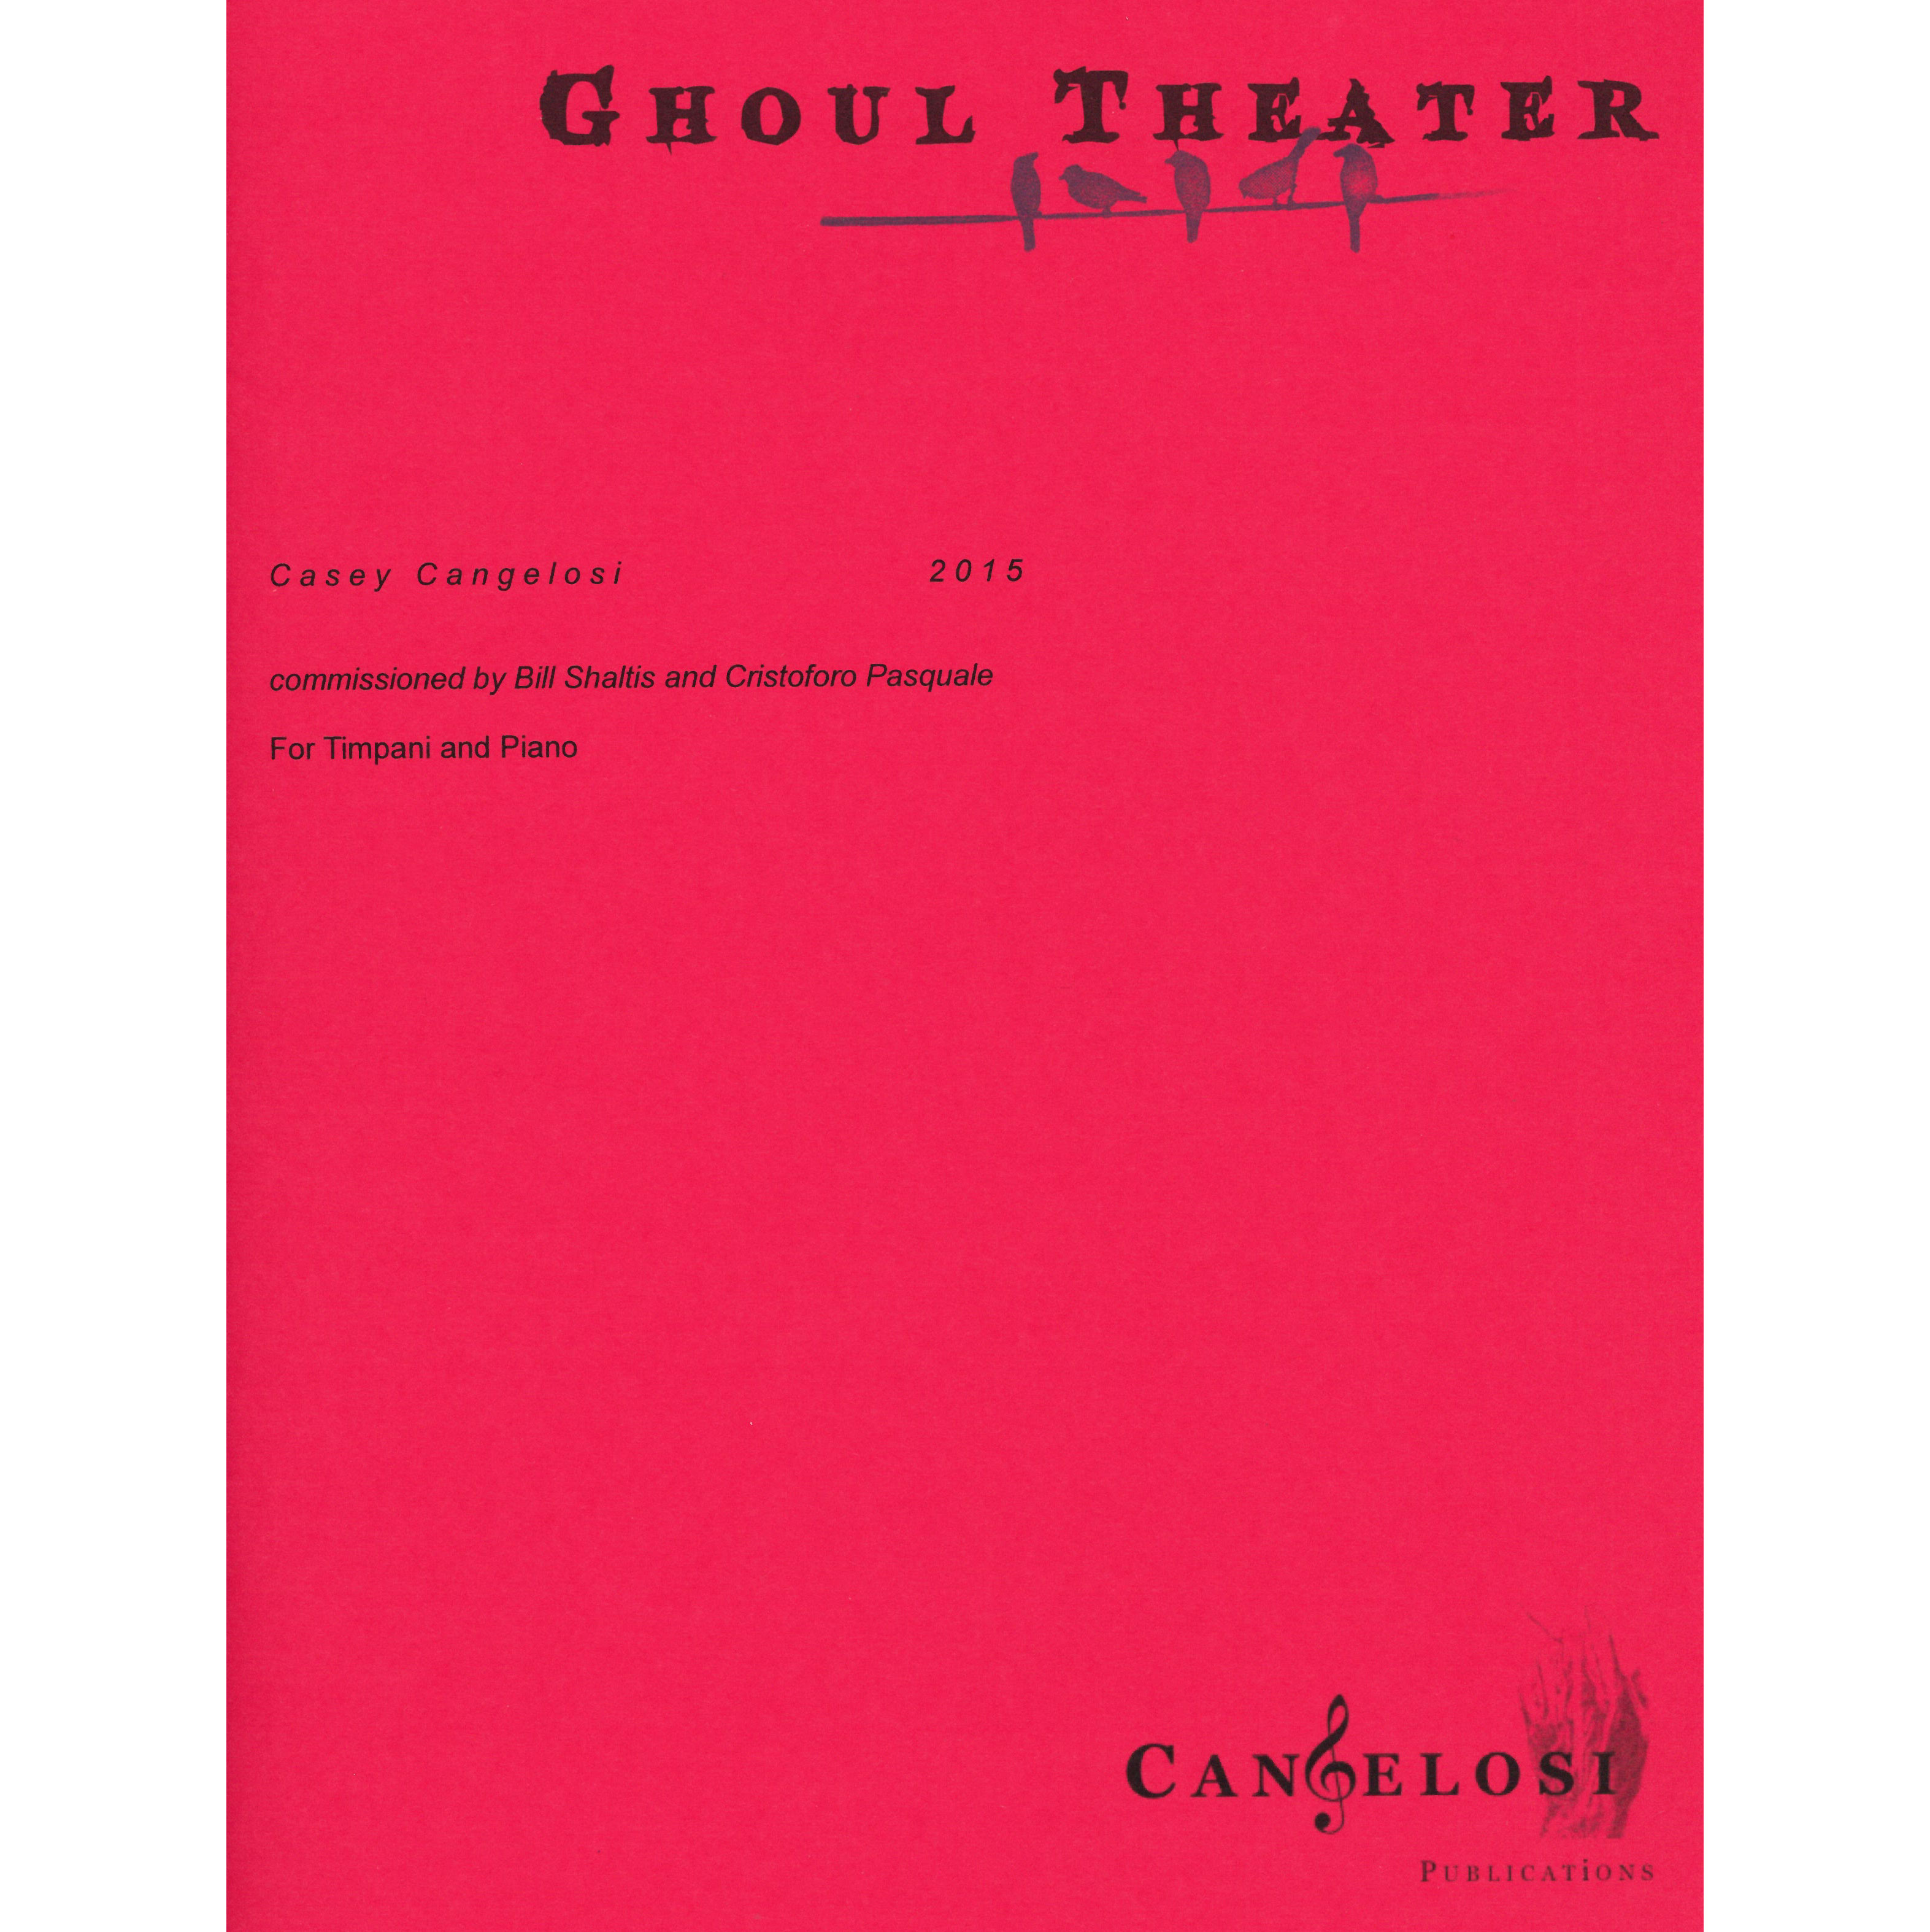 Ghoul Theater by Casey Cangelosi